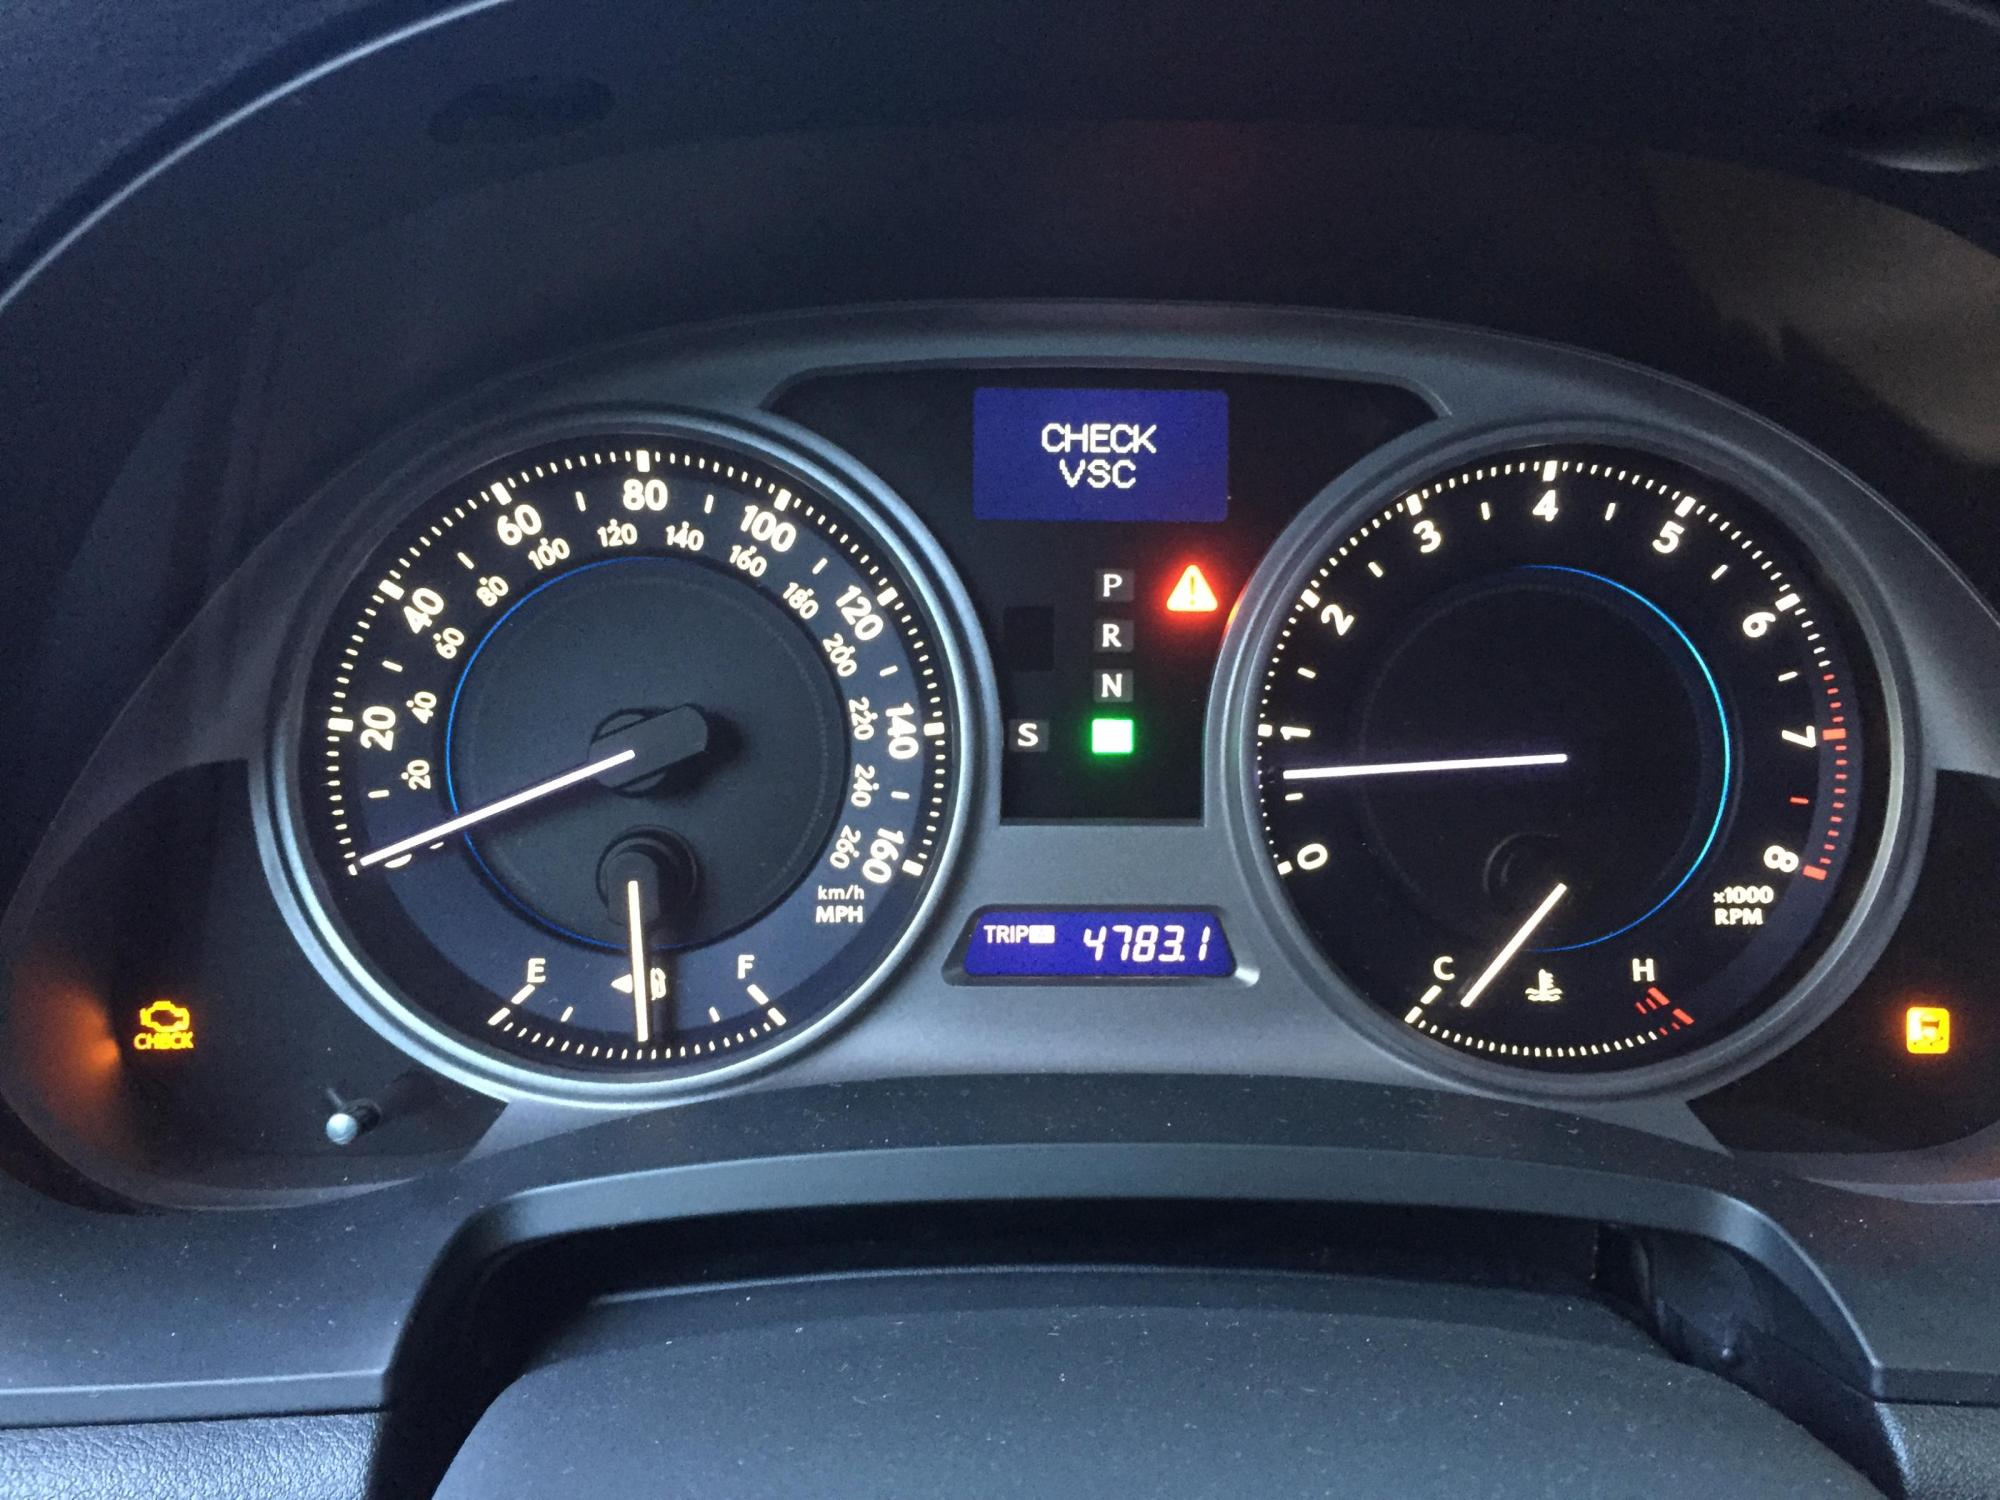 hight resolution of check vsc traction control and check engine lights on problem